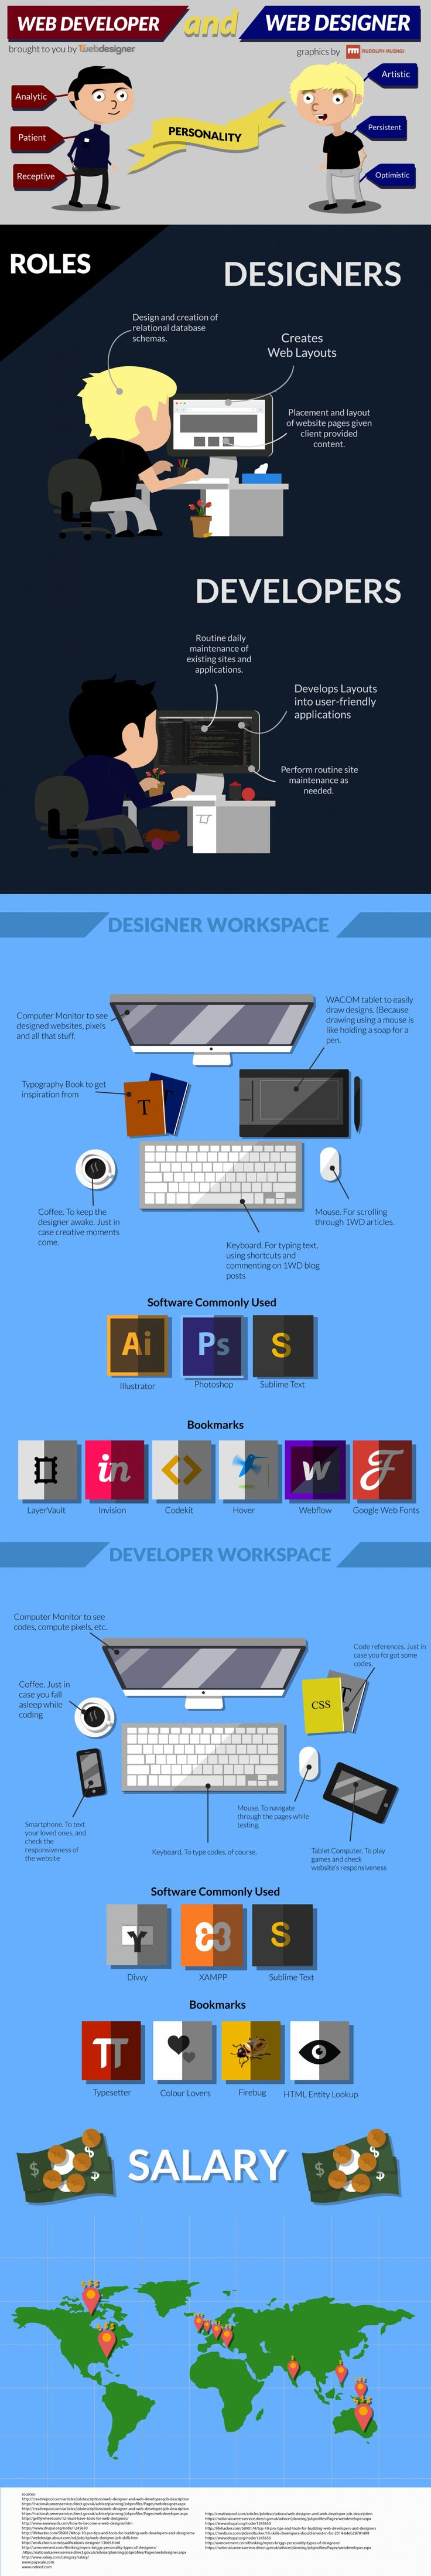 #WebDeveloper and #WebDesigner [ #infographic]